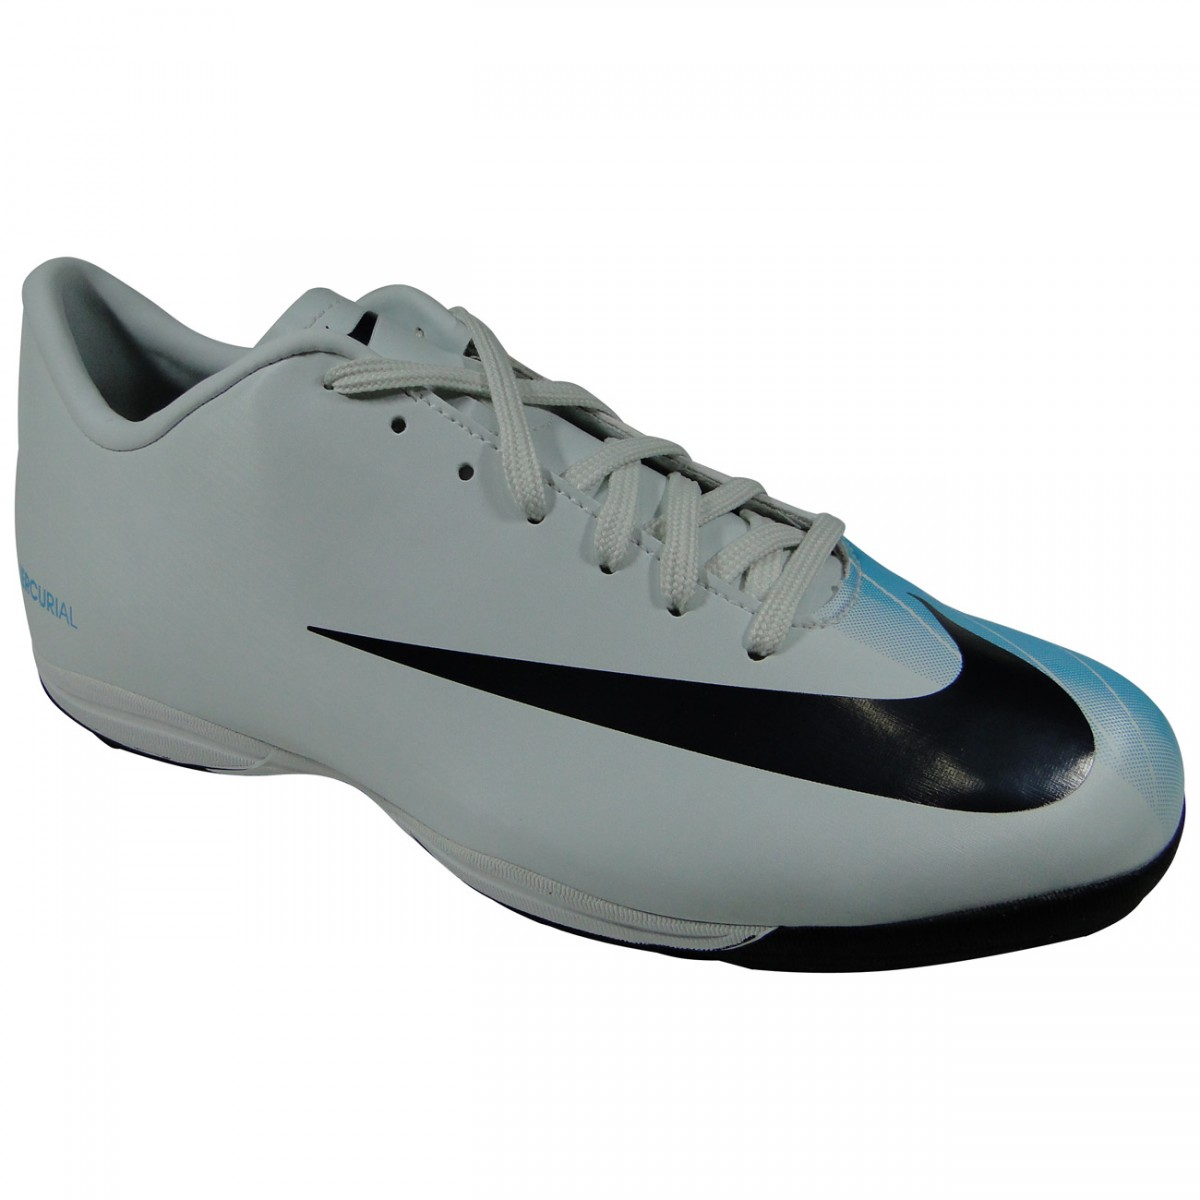 53e29 54c35  coupon for chuteira society nike mercurial victory. zoom 73d90  e8dc6 d37821a6e9cbf